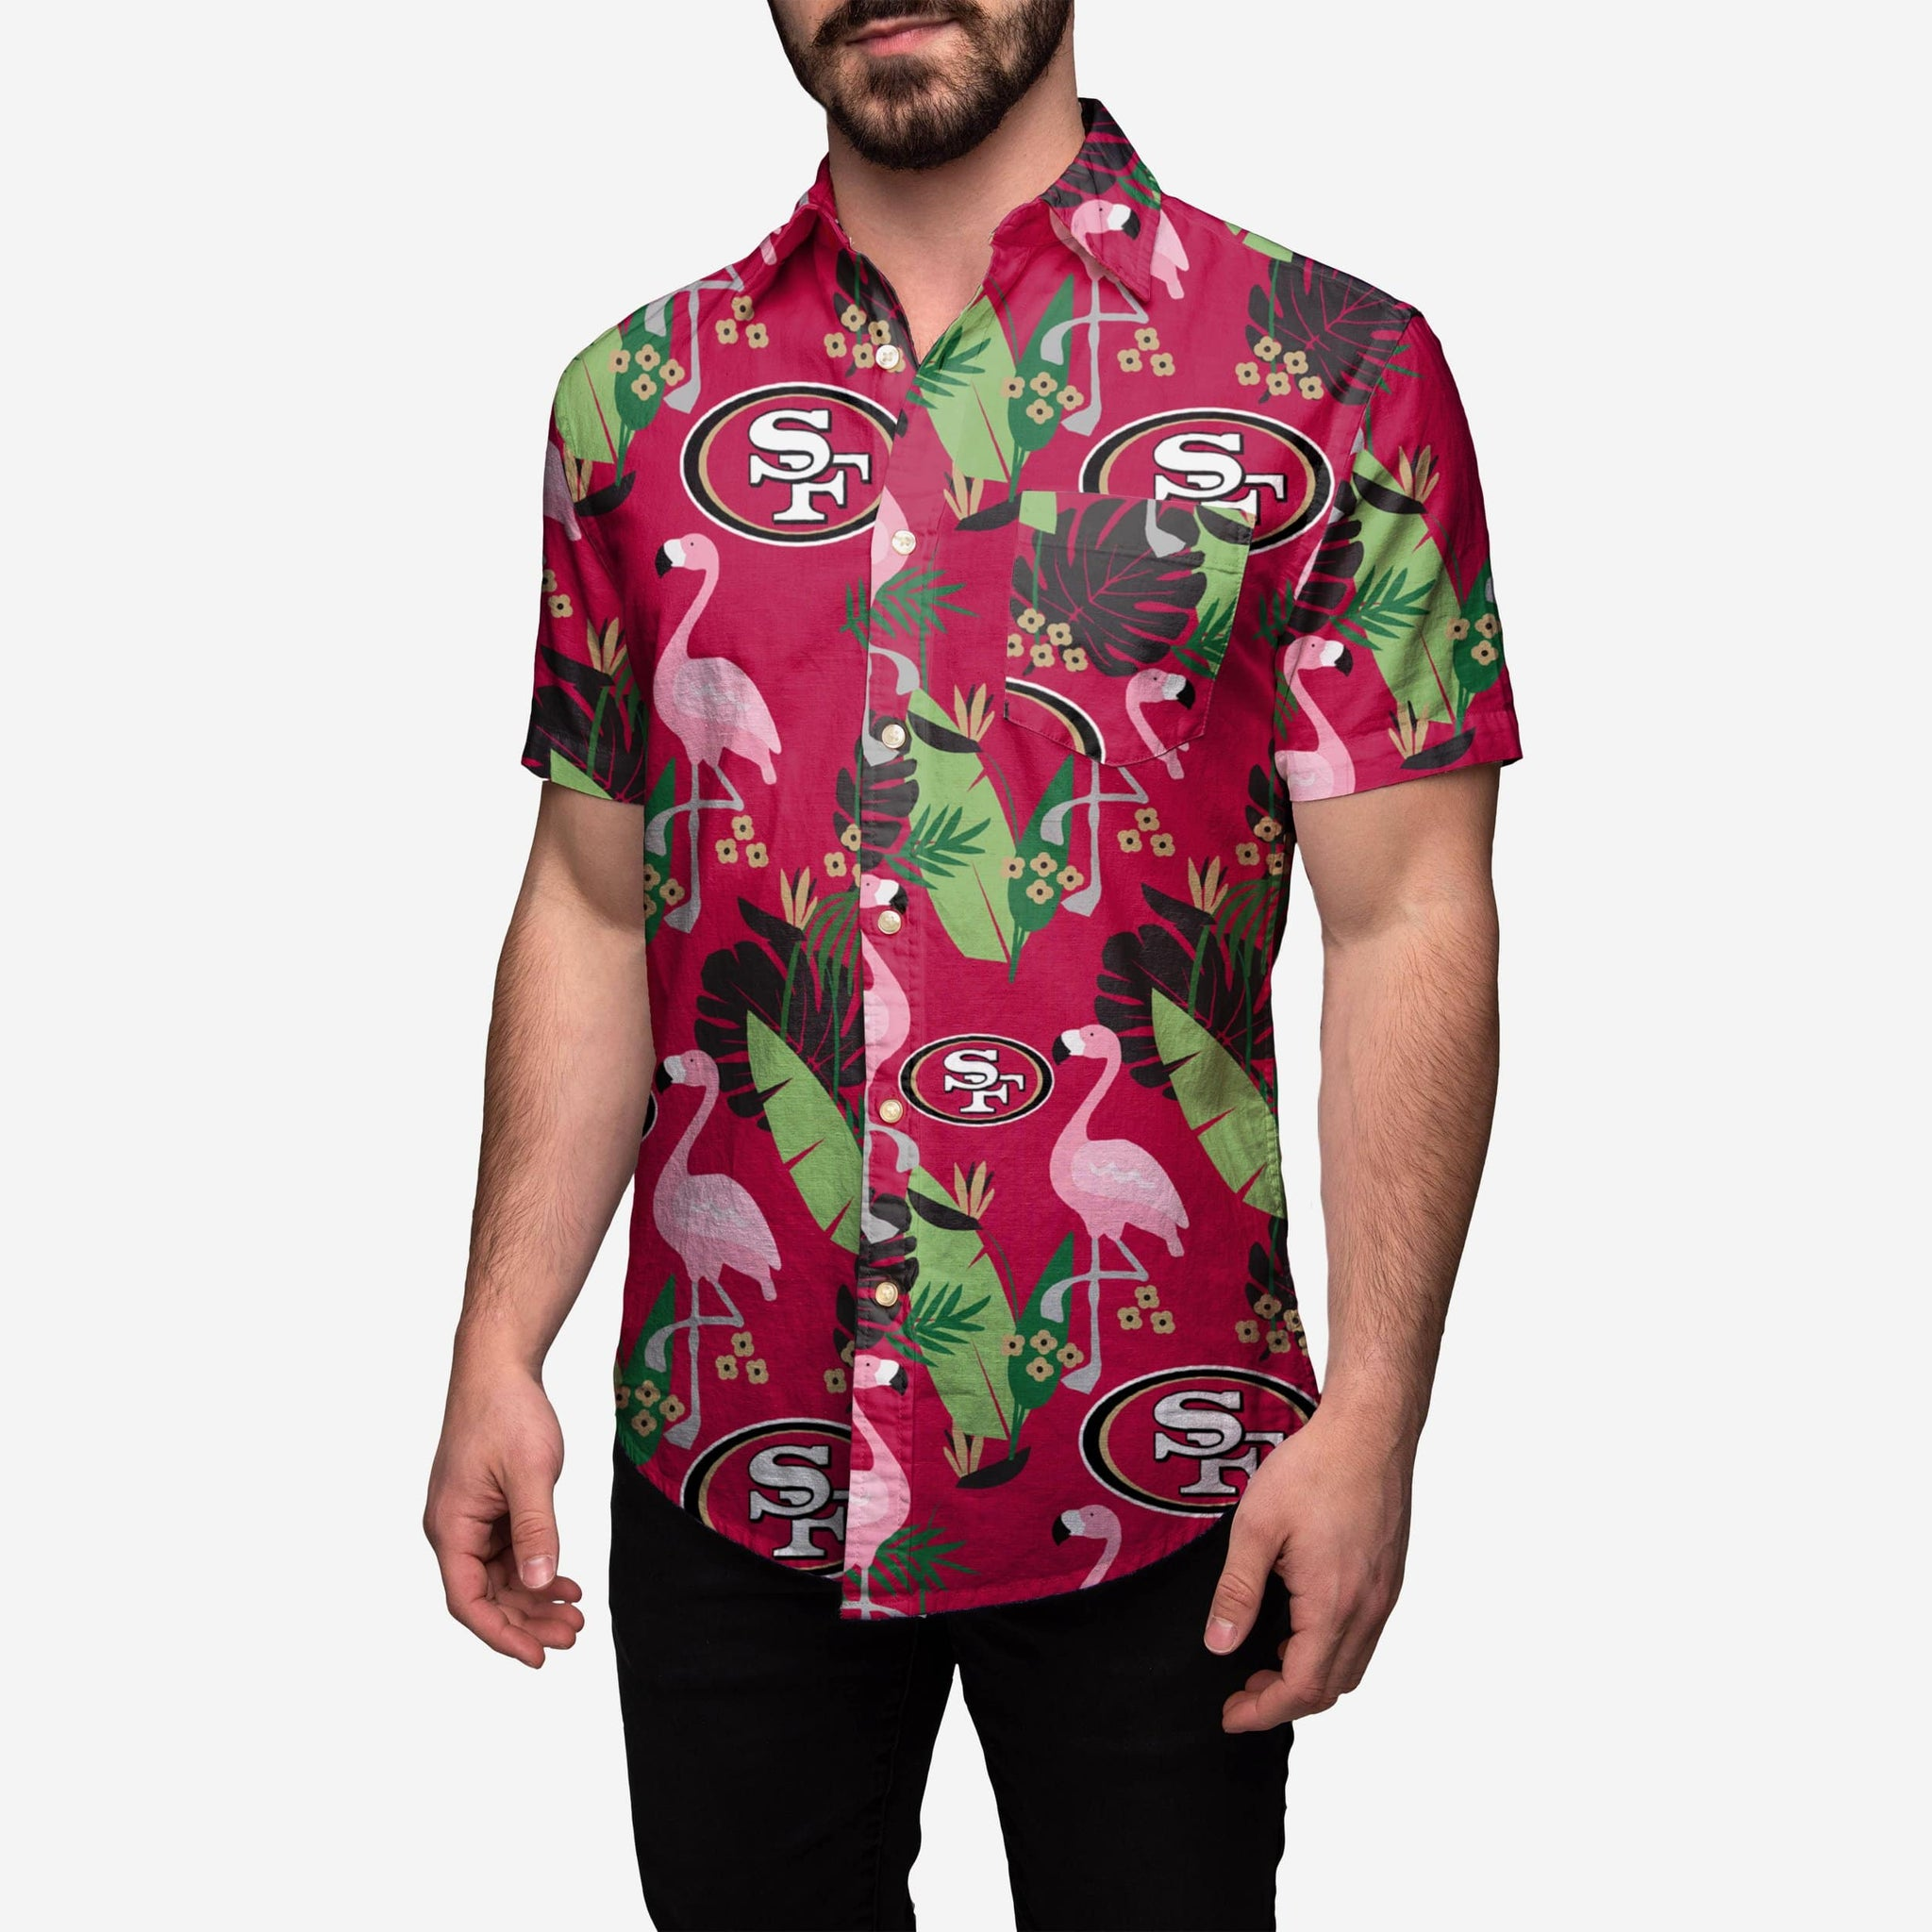 edd35602a75 San Francisco 49ers Floral Button Up Shirt FOCO - FOCO.com